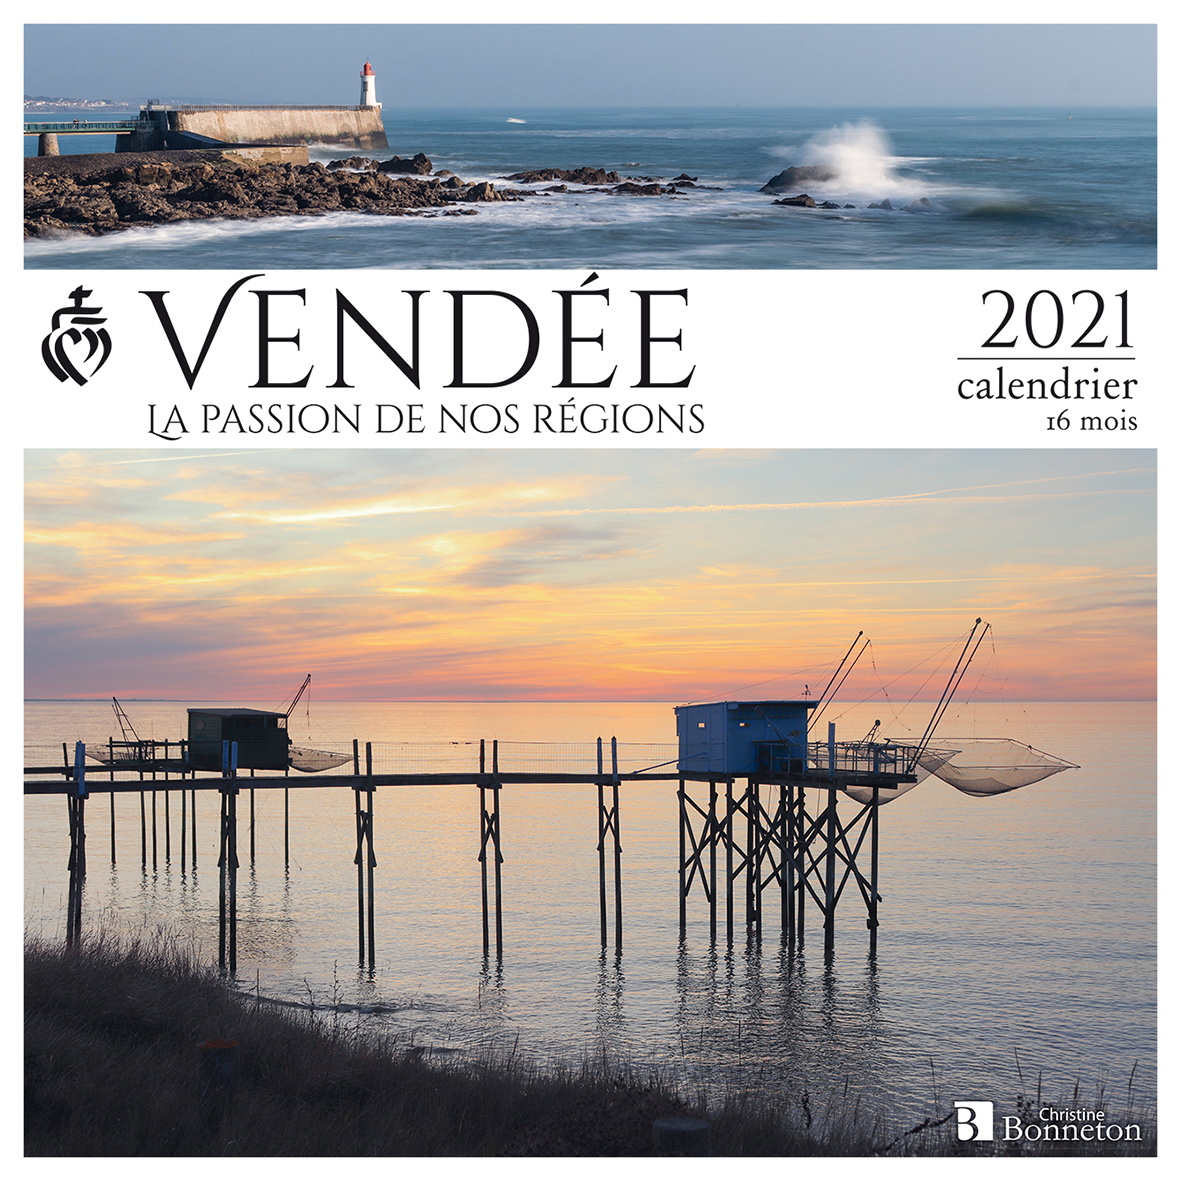 CALENDRIER VENDEE 2021